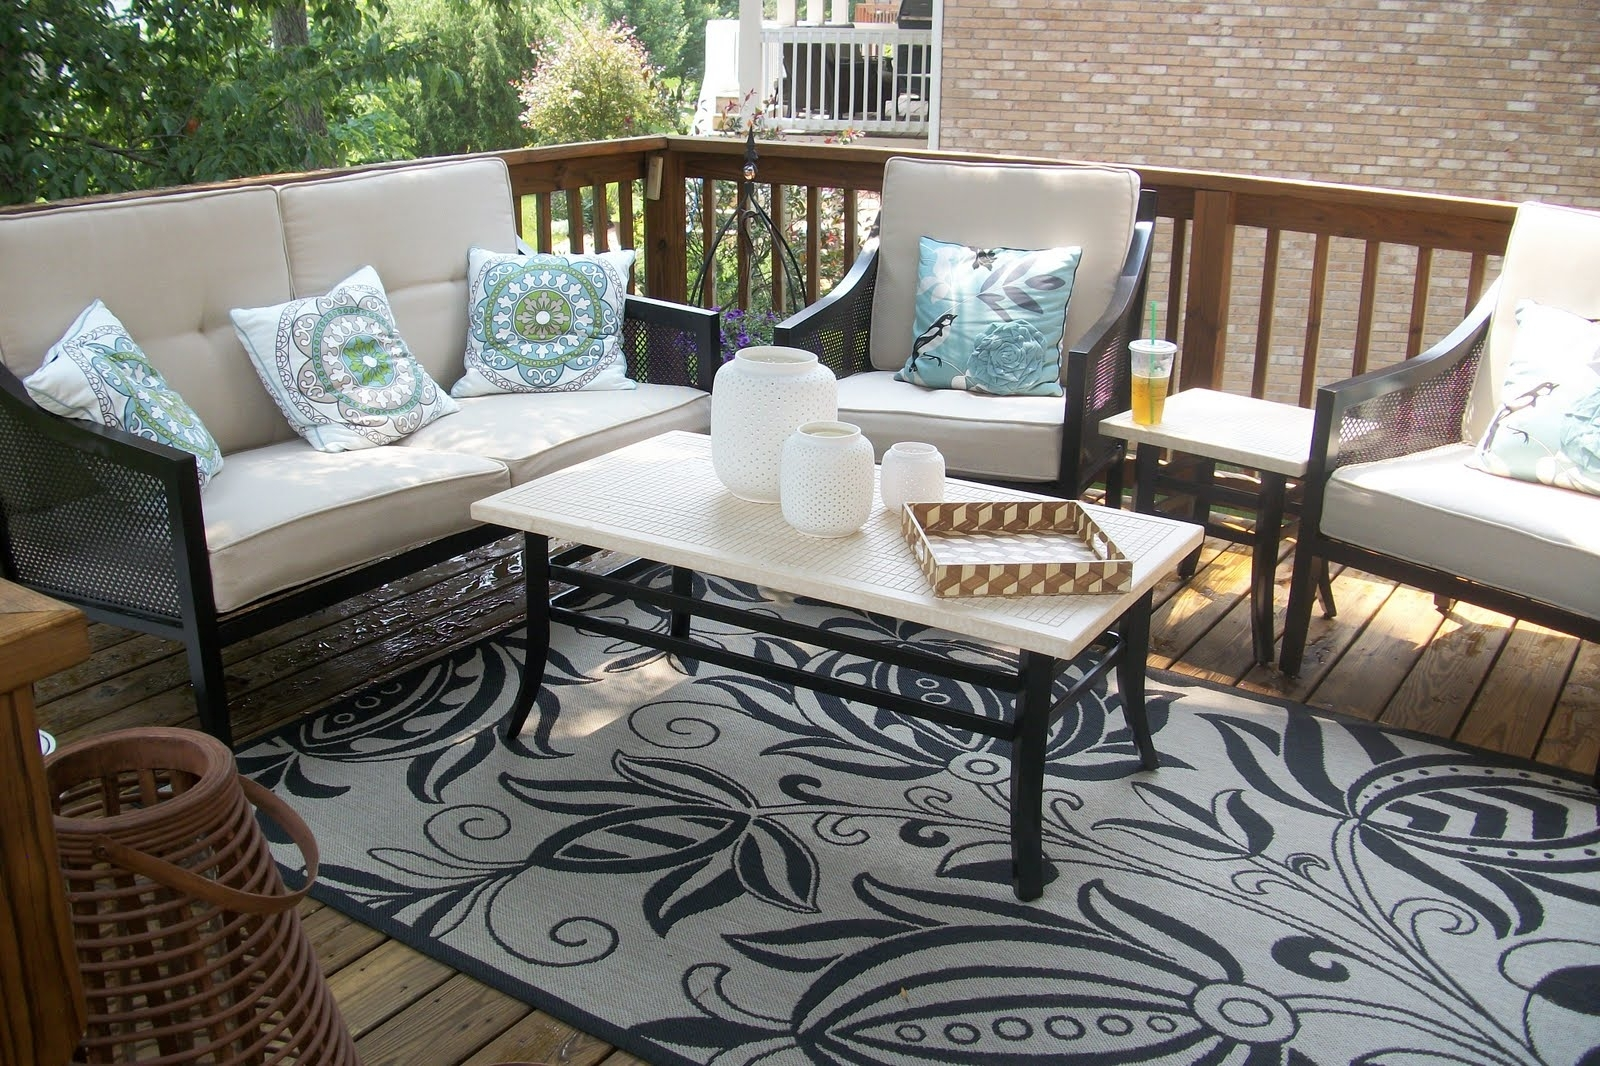 Target Patio Furniture Conversation Sets Within Fashionable Patio : Outdoor Patio Furniture Walmart Target Engaging Image (View 5 of 15)